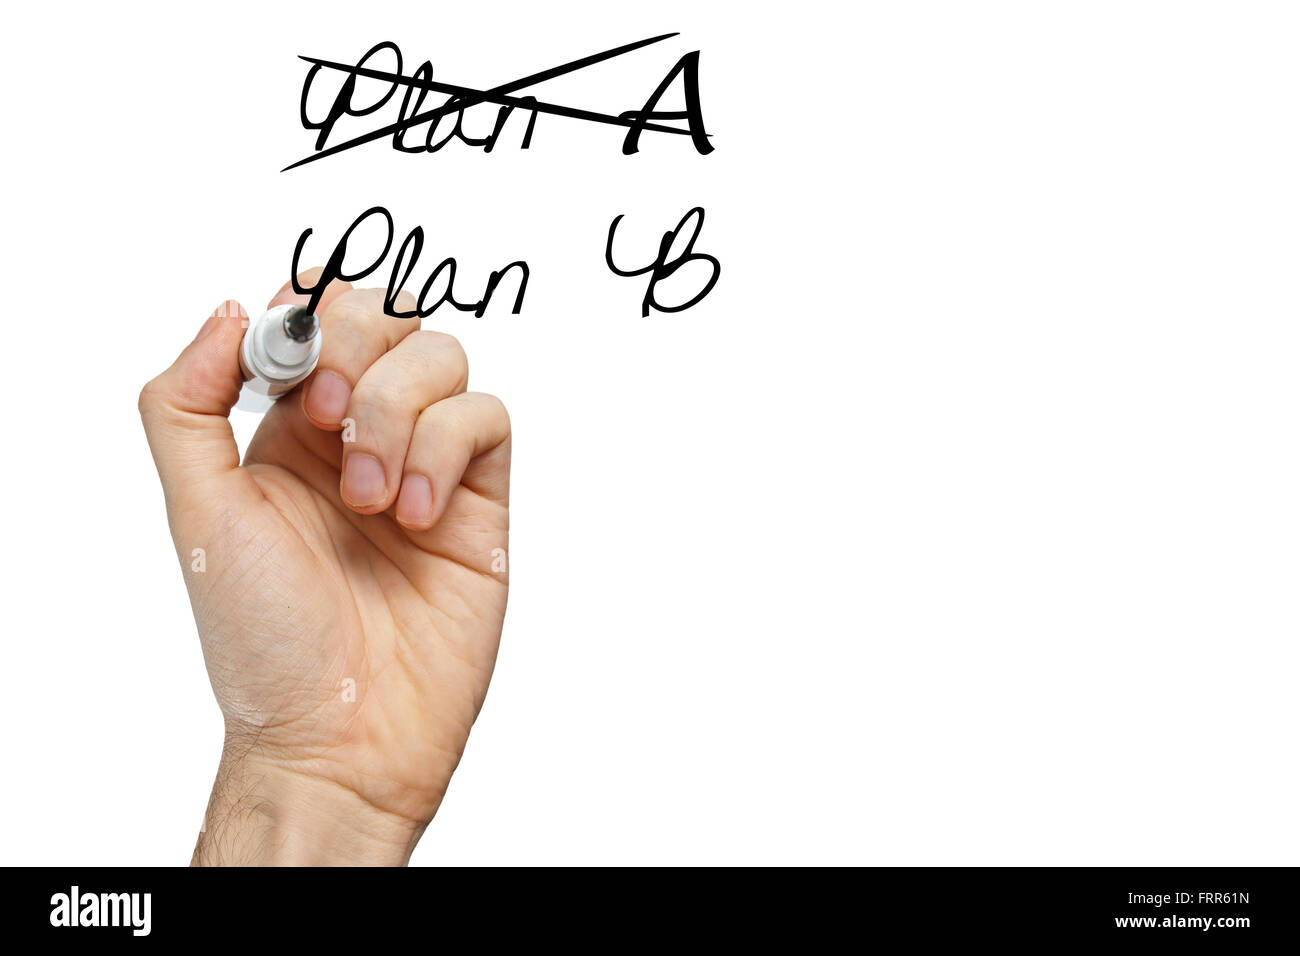 Business plan strategy changing. Hand crossing over Plan A, writing Plan B. Isolated on white. - Stock Image